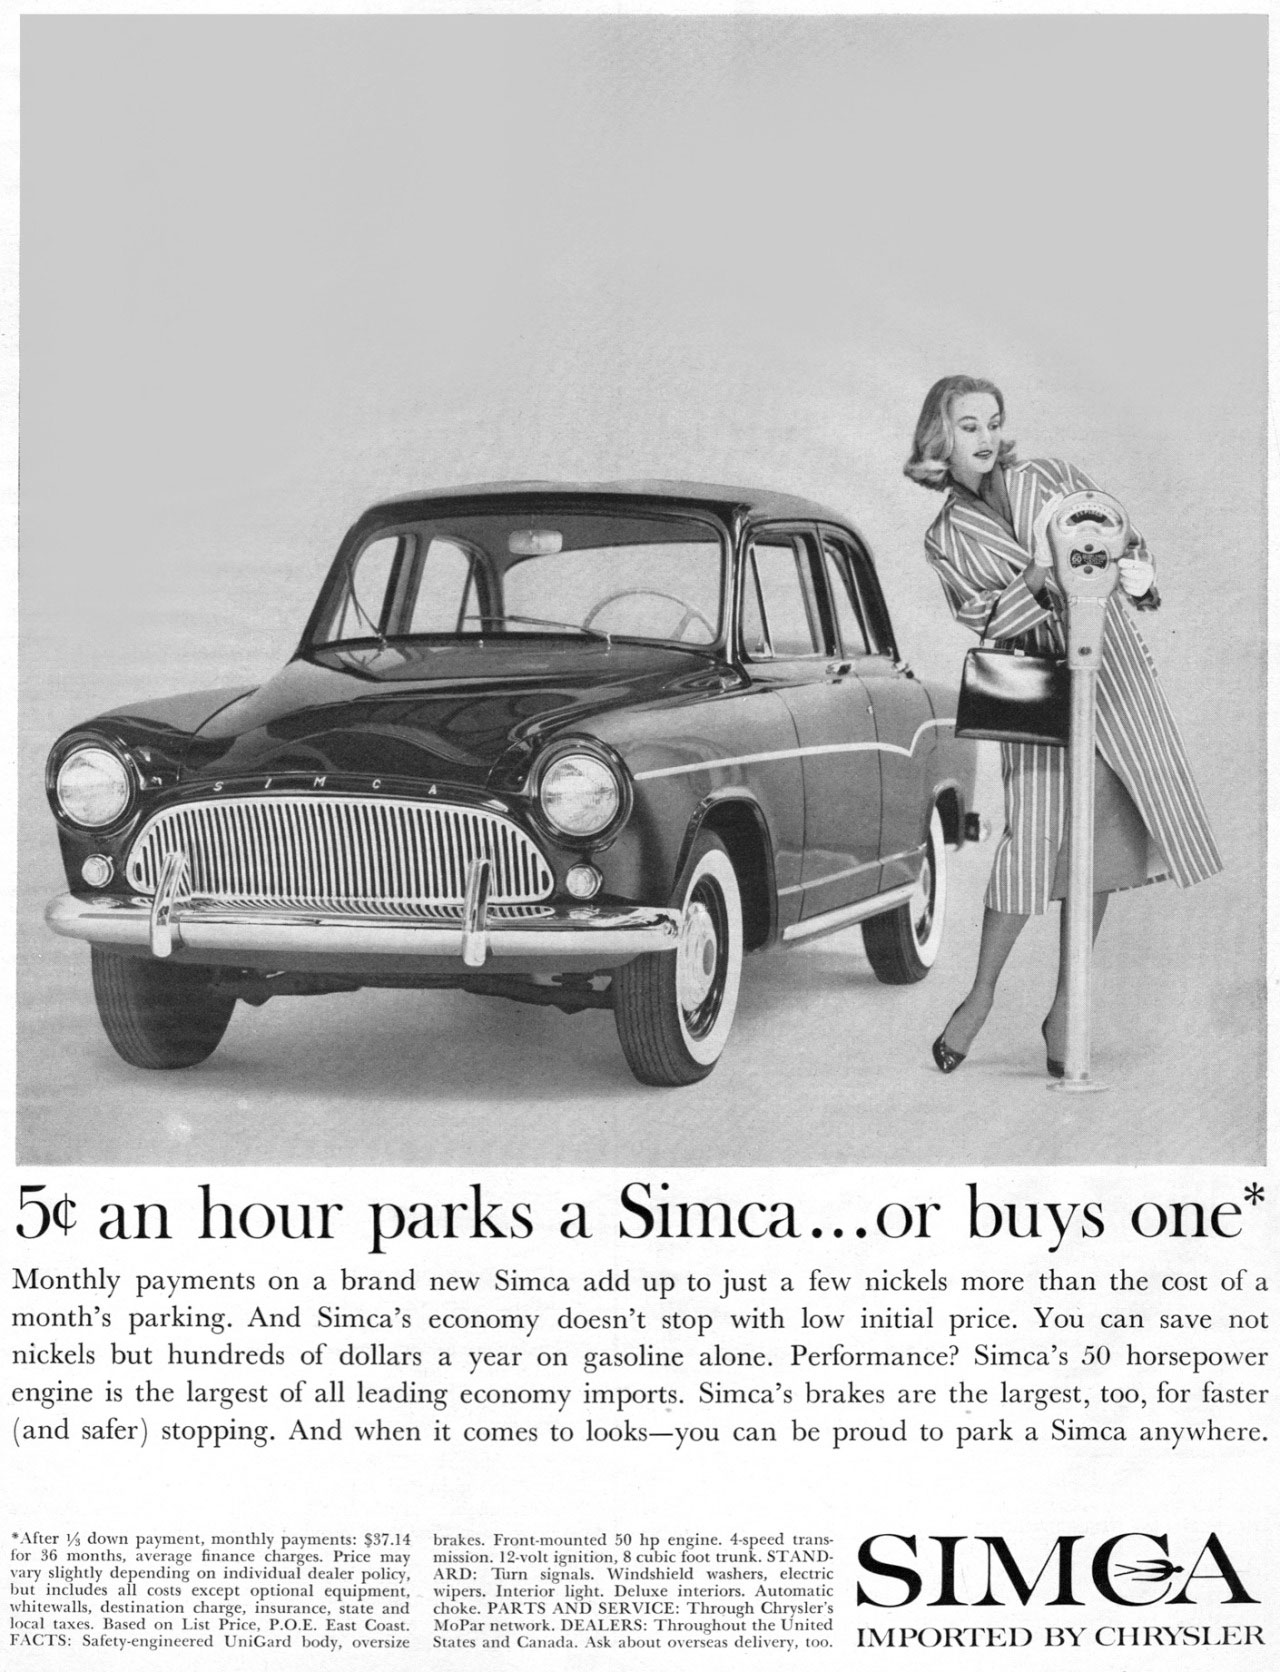 "5 cents an hour parks a Simca...or buys one*  Monthly payments on a brand new Simca add up to just a few nickels more than the cost of a month's parking. And Simca's economy doesn't stop with low initial price. You can save not nickels but hundreds of dollars a year on gasoline alone. Performance? Simca's .50 horsepower engine is the largest of all leading economy imports. Simca's brakes are the largest, too, for faster (and safer) stopping. And when it comes to looks—you can be proud to park a Simca anywhere.  •After 1/4 down payment, monthly payments: $37.14 brakes. Front-mounted 50 hp engine. 4-speed trans-for 36 months, average finance charges. Price may mission. 12-volt ignition, 8 cubic foot trunk. STAND-vary slightly depending on individual dealer policy, ARD: Turn signals. Windshield washers, electric IMSA but includes all costs except optional equipment, wipers. Interior light. Deluxe interiors. Automatic whitewalls, destination charge, insurance, state and choke. PARTS AND SERVICE: Through Chrysler's local taxes. Based on List Price, P.O.E. East Coast. MoPar network. DEALERS: Throughout the United , , "" .', ., , "" , , , , , , , "" , ,, , , , .) FACTS: Safety-engineered UniGard body, oversize States and Canada. Ask about overseas delivery, too. I.V1 I'l ni.Cr.i / 15 l' CI 11,17,1,1:IX"